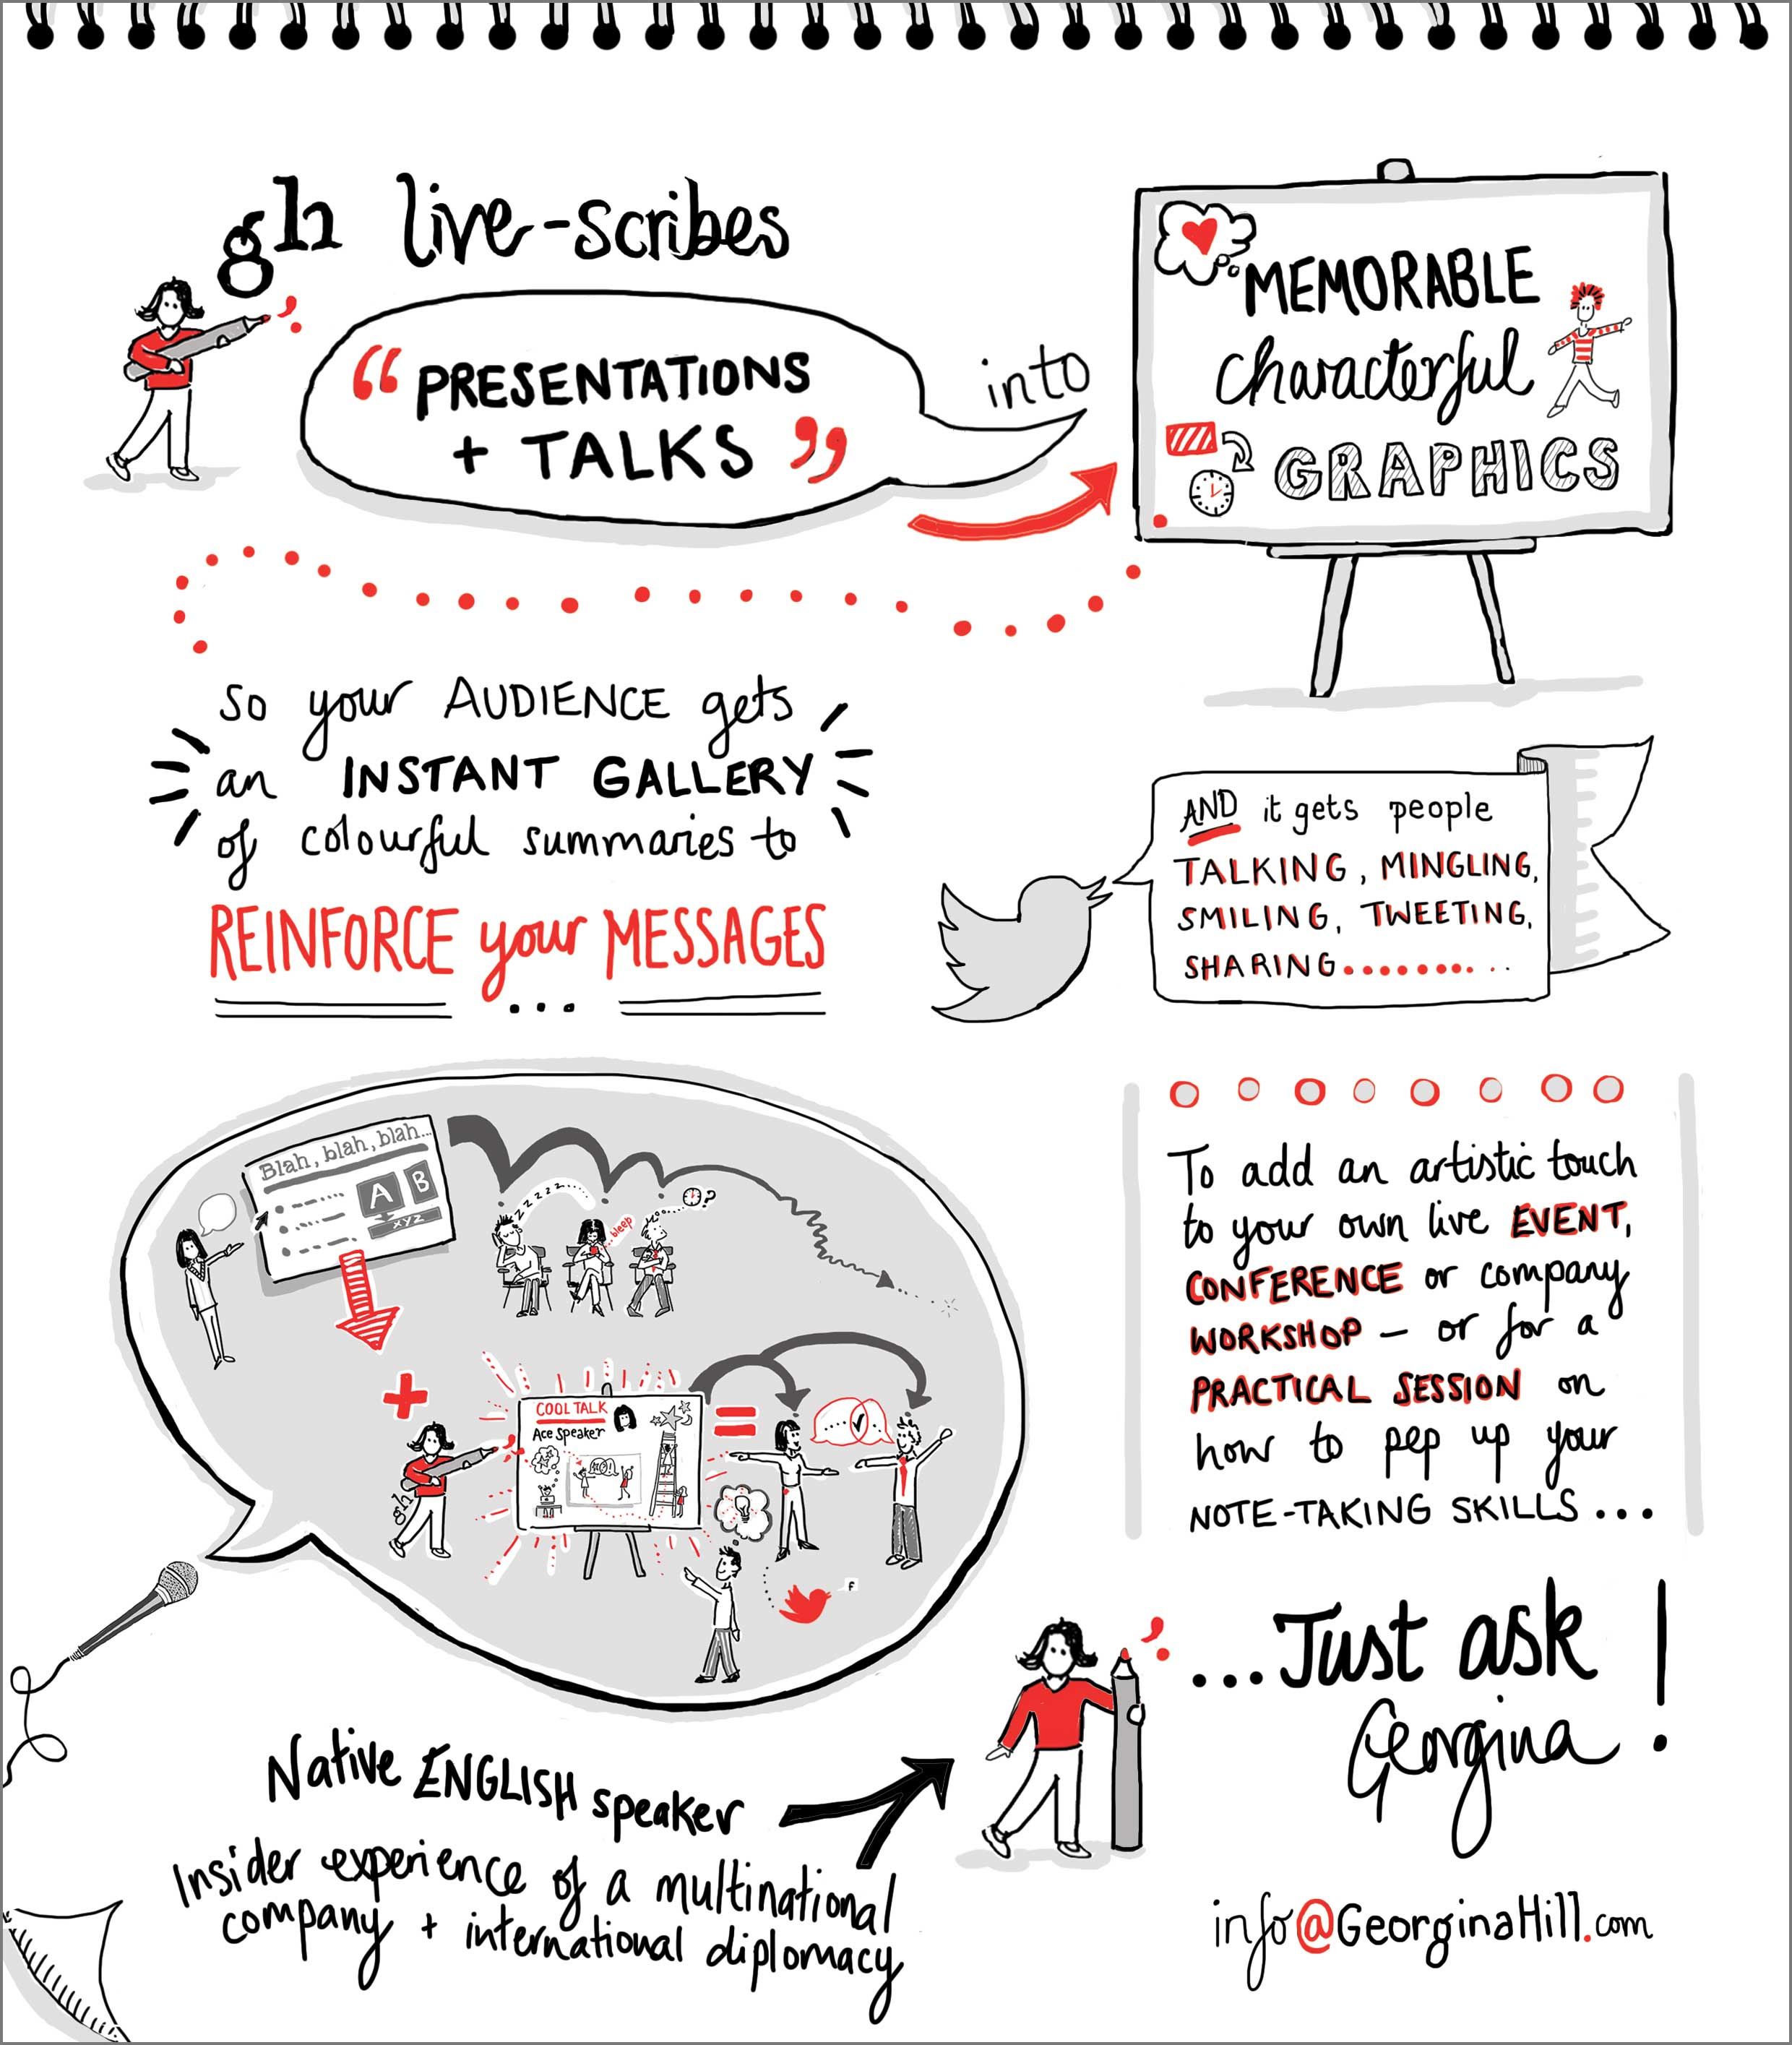 GH-illustrations-LiveScribe-ABOUT-A4-v3-website